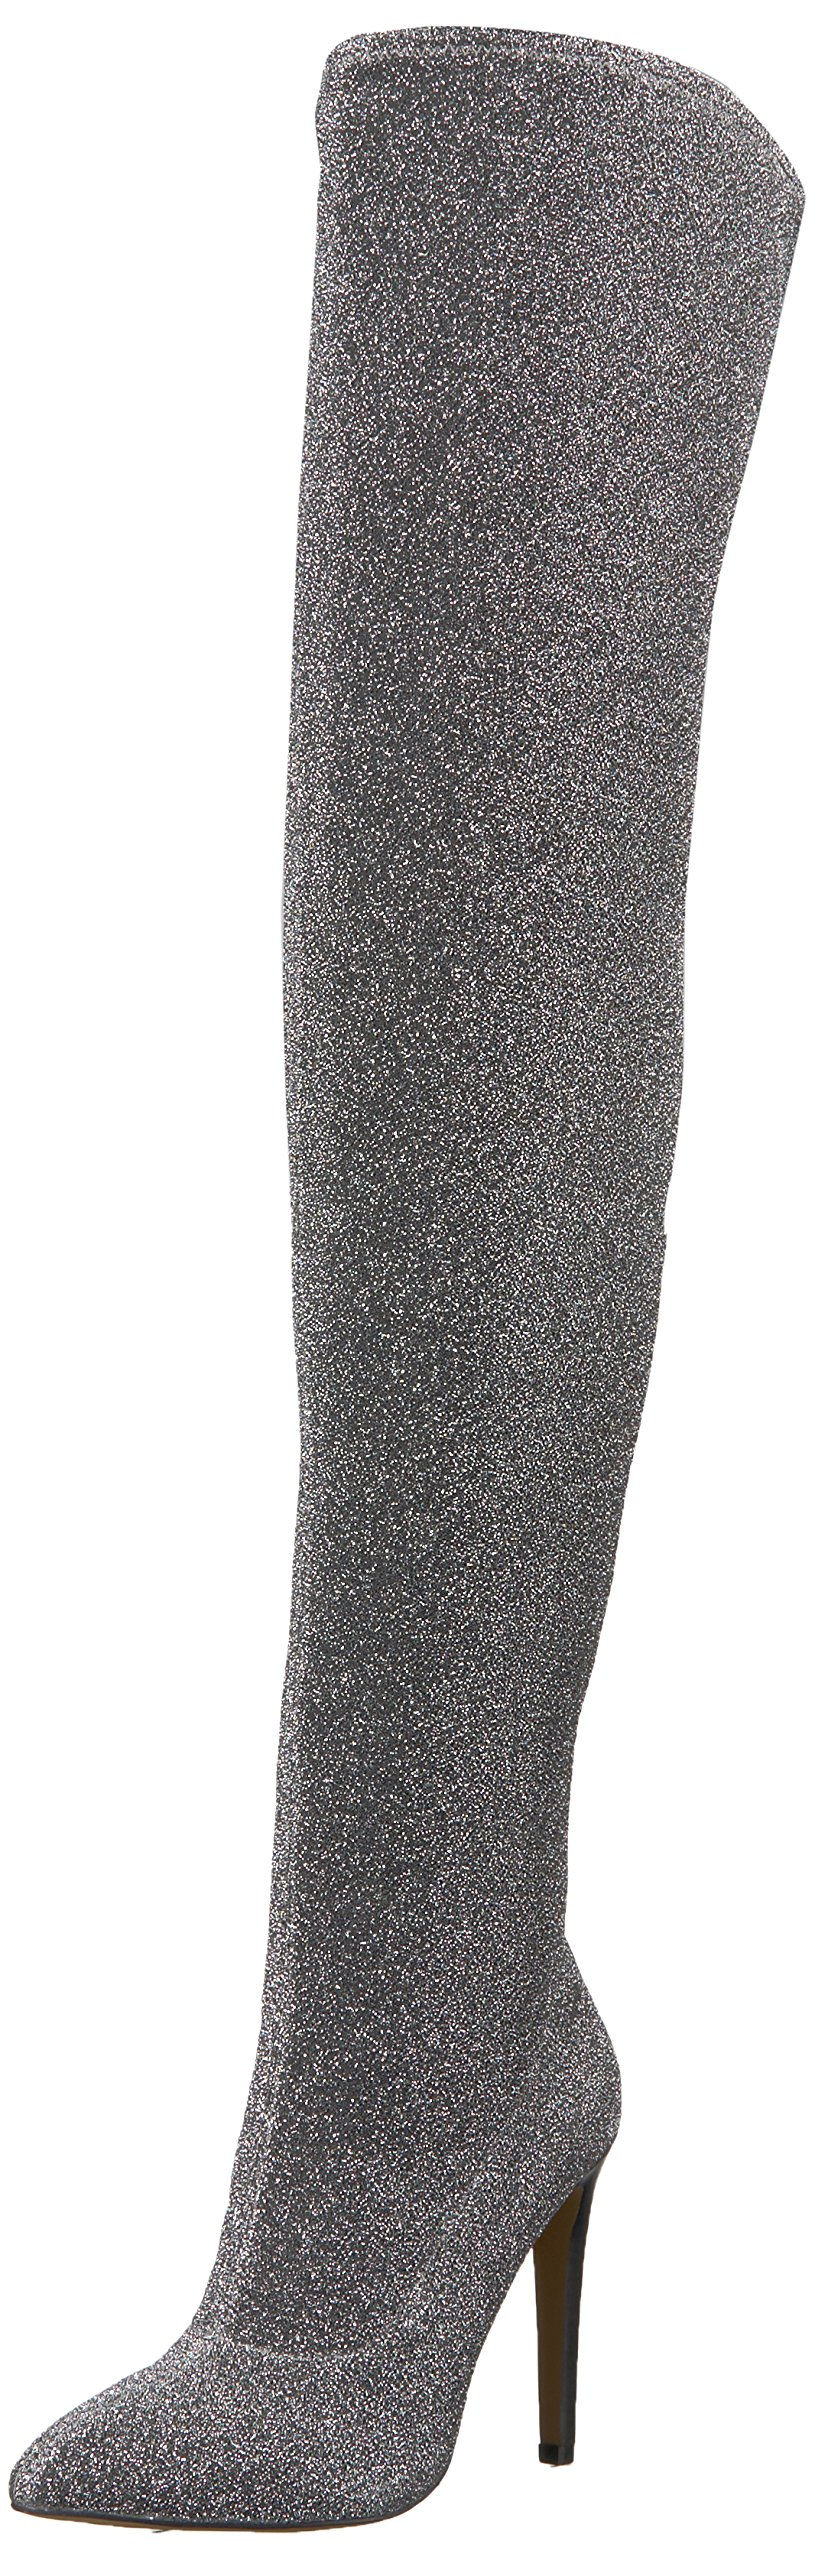 The Fix Women's MIA Pointed-Toe Thigh-High Sock Boot, Pewter, 10 B US